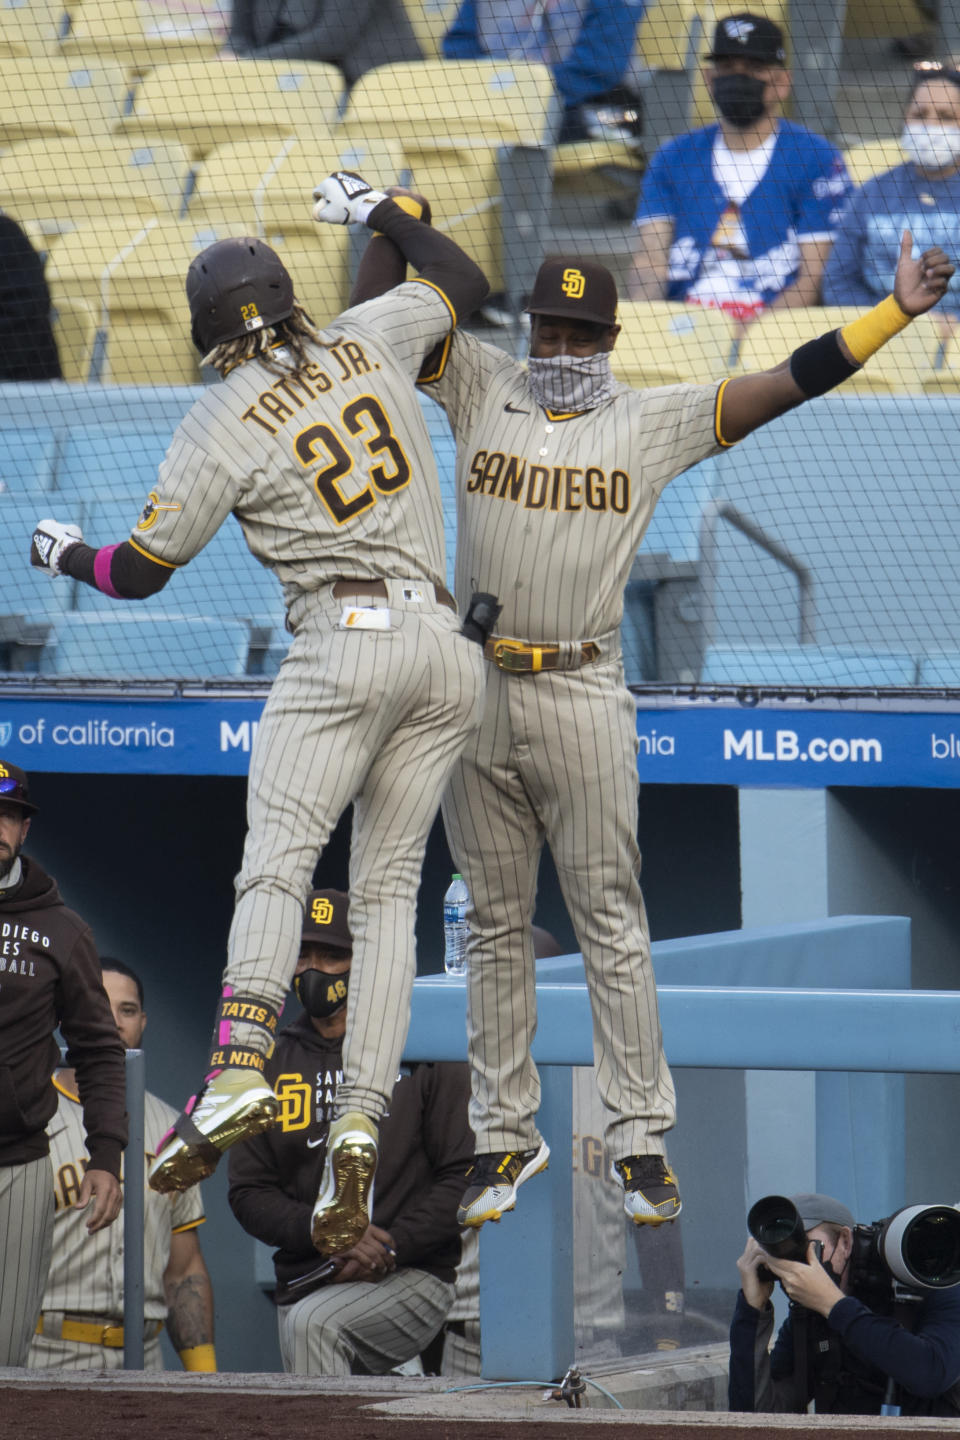 San Diego Padres' Fernando Tatis Jr., left, and Jurickson Profar celebrate Tatis' solo home run during the first inning of the team's baseball game against the Los Angeles Dodgers in Los Angeles, Saturday, April 24, 2021. (AP Photo/Kyusung Gong)